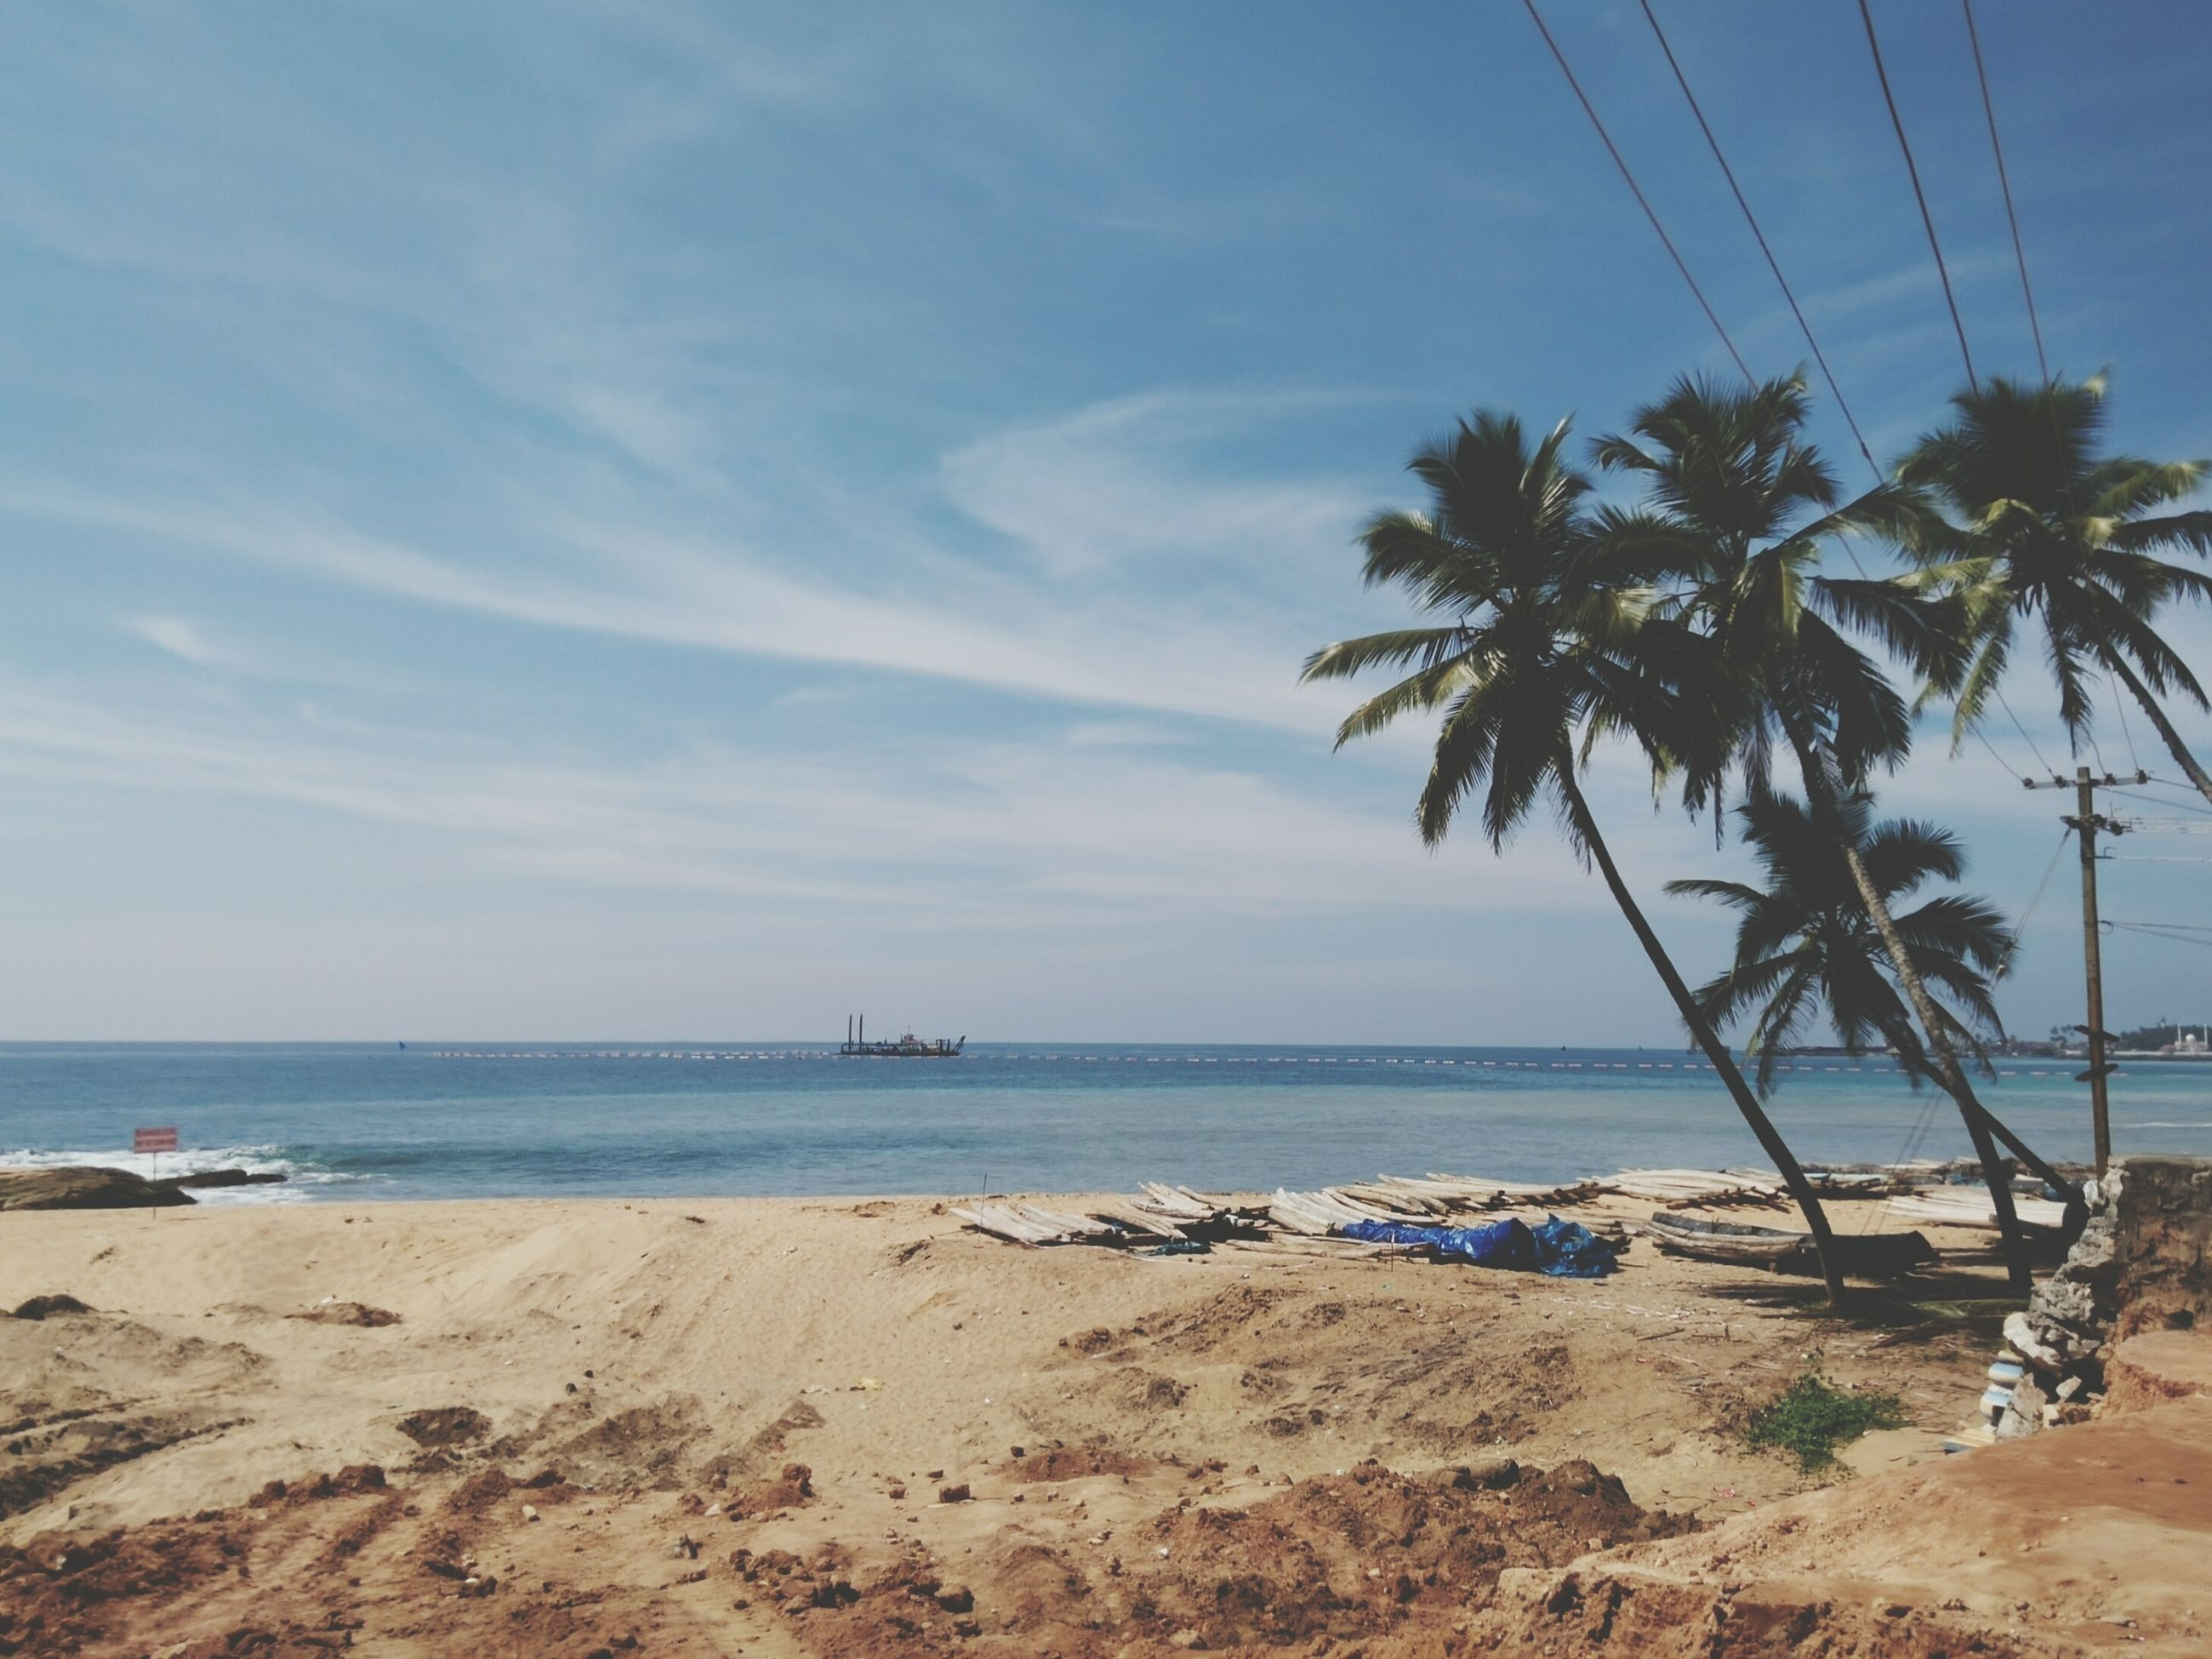 sea, beach, water, horizon over water, sky, shore, tranquility, tranquil scene, scenics, sand, beauty in nature, tree, nature, palm tree, nautical vessel, cloud - sky, transportation, idyllic, coastline, day